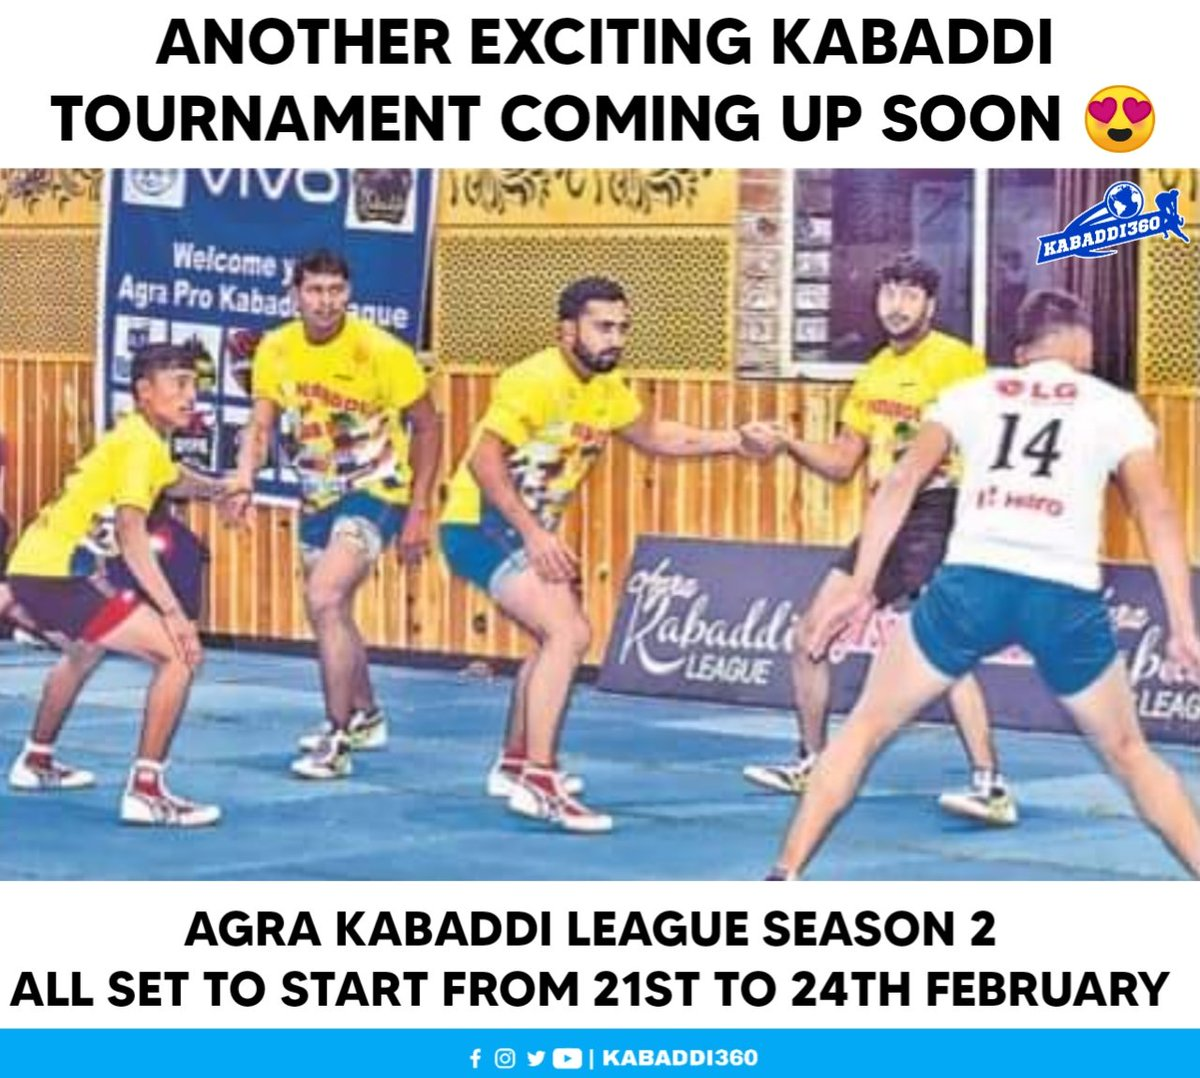 A Surprise is coming soon for our Kabaddi fans 🥳🎉 This tournament will feature some of the Pro Kabaddi players as well.   #AgraKabaddiLeague #Kabaddi360 #Kabaddi